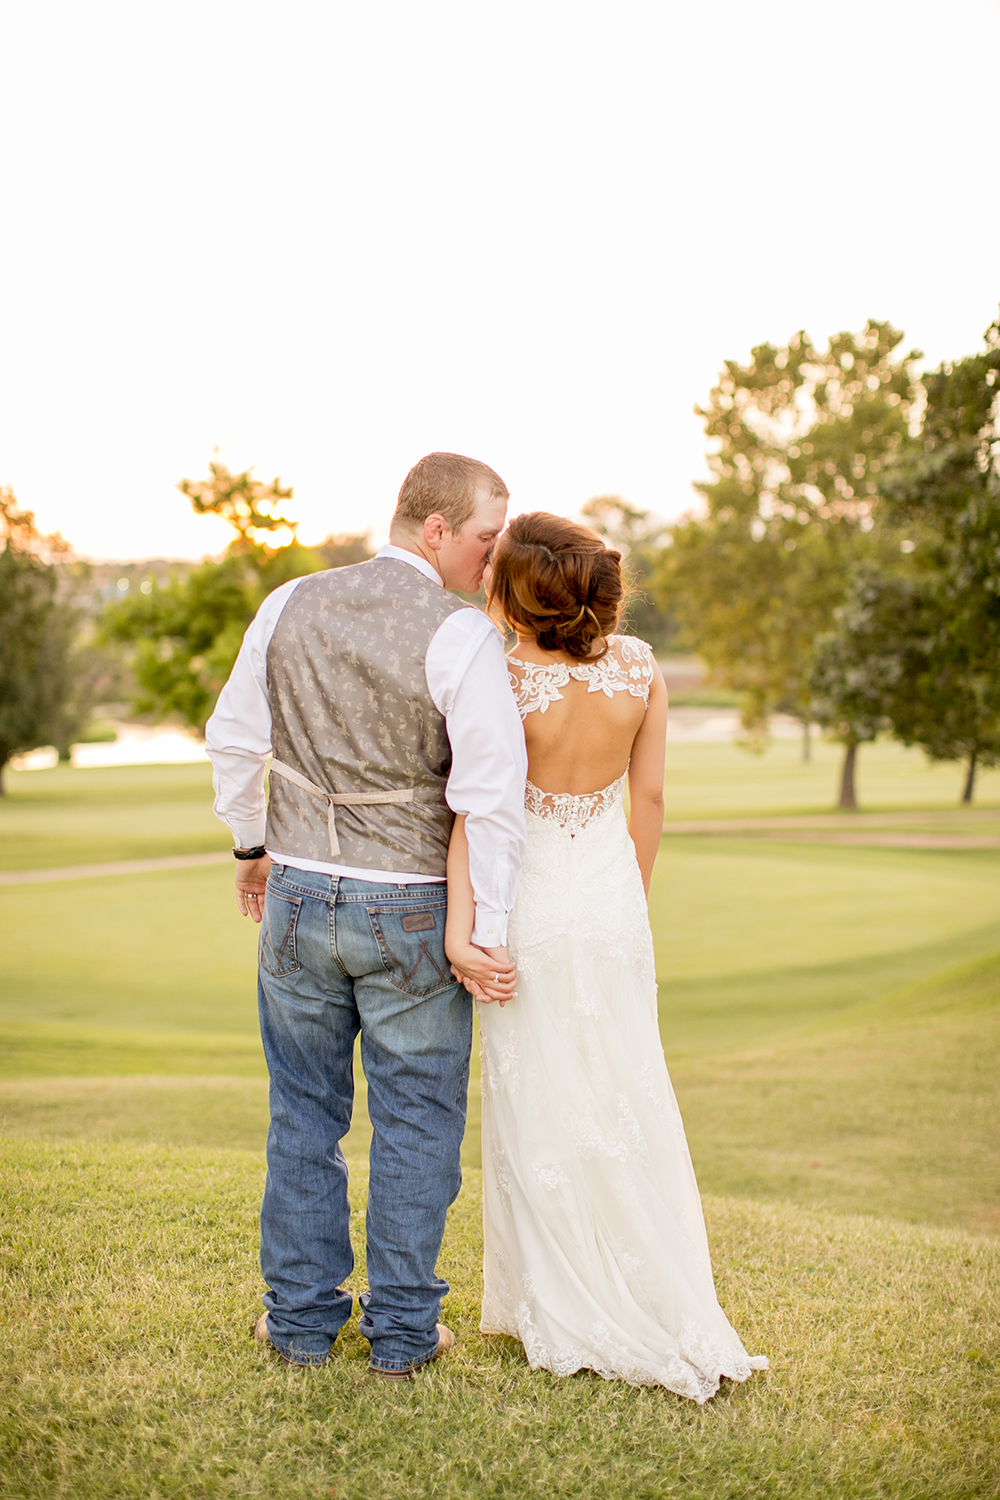 OKC_WEDDING_PHOTOGRAPHY_ROSE_COLEMAN002.jpg